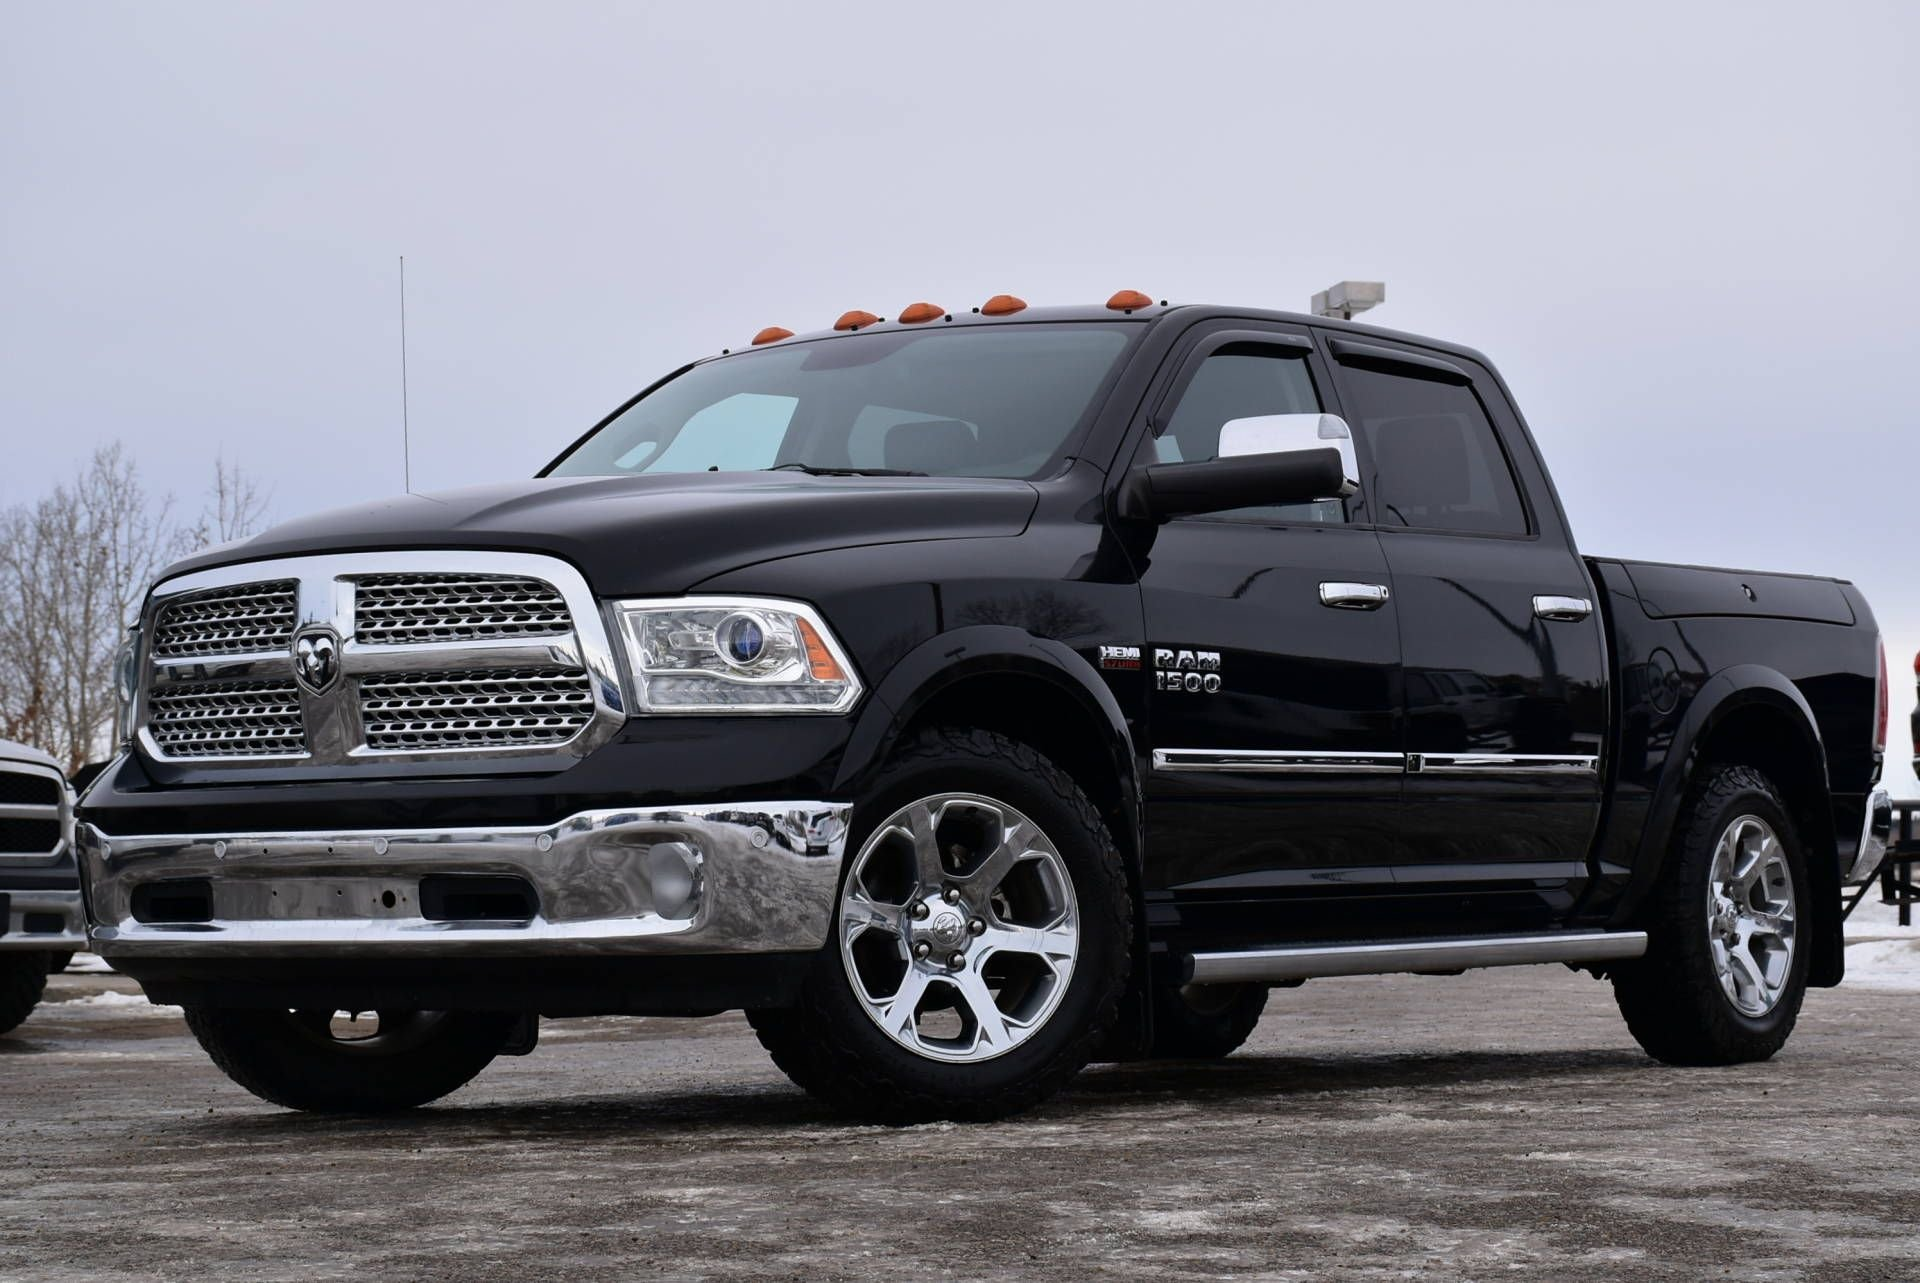 2014 ram 1500 laramie loaded